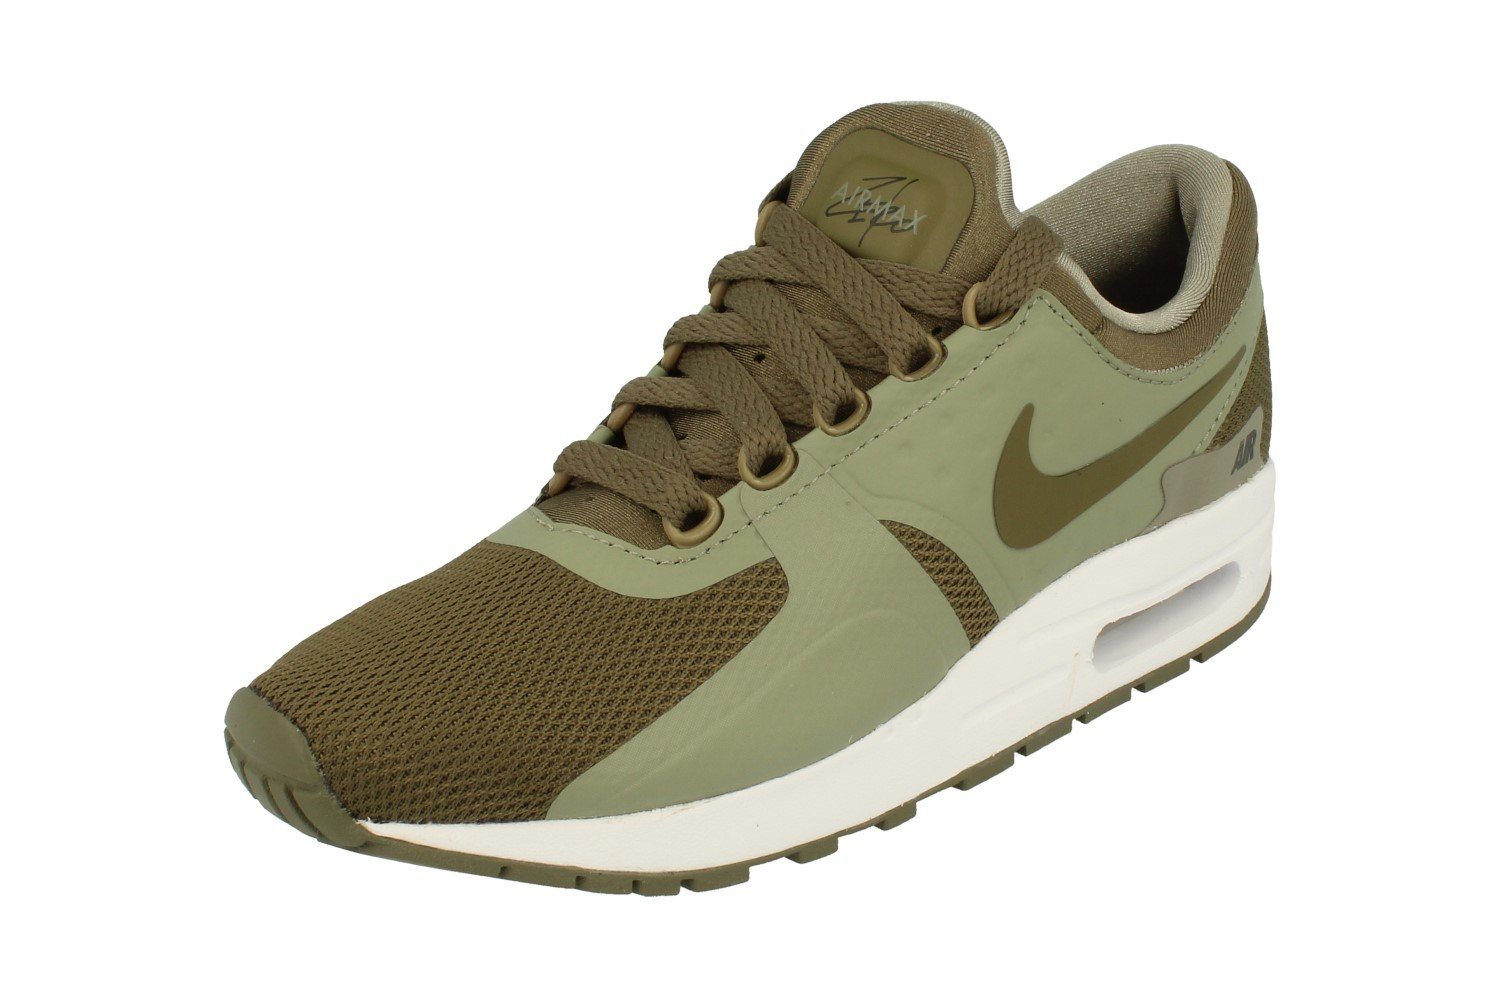 Nike  Air Max Zero Essential GS Running Shoe B005LMZLR4 US 4Y|Medium Olive 200